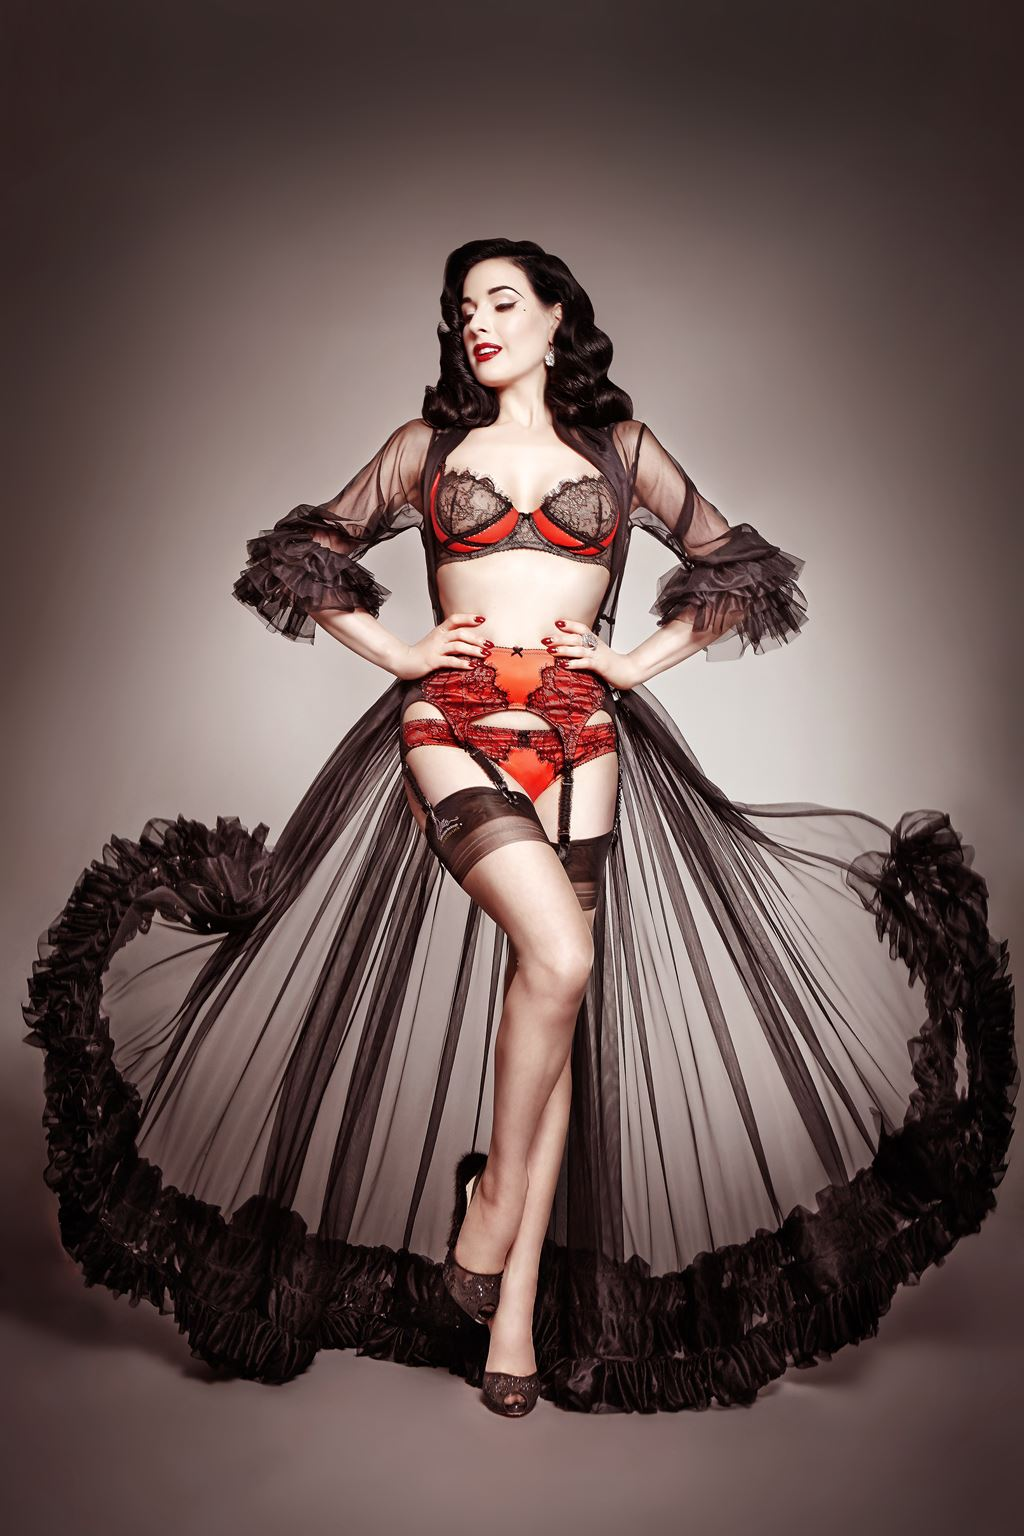 Dita Von Teese grew up fascinated by the Golden Age of ... Dita Von Teese